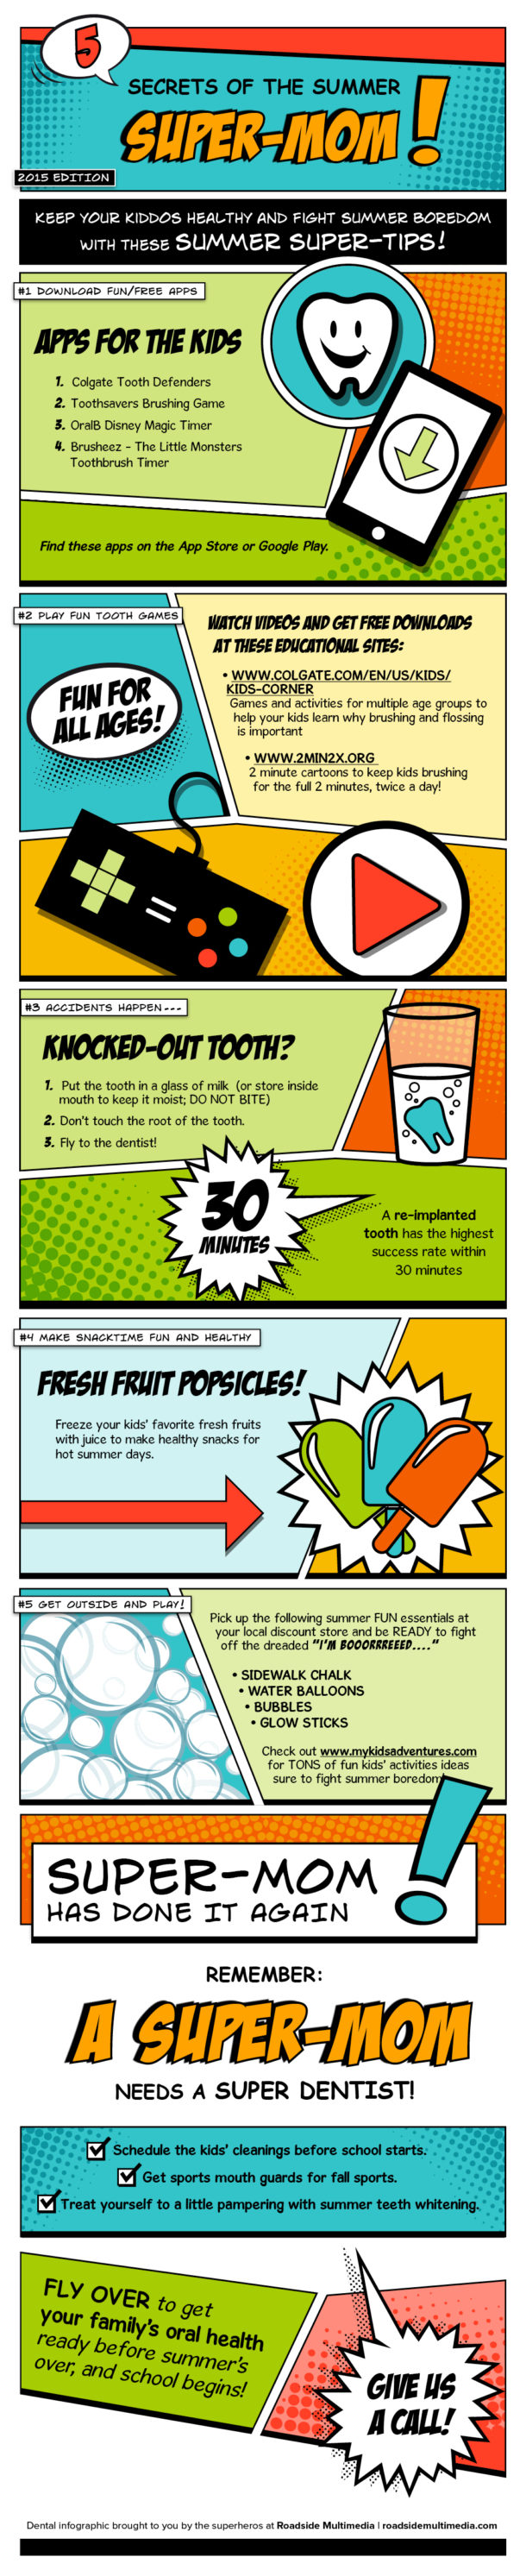 Some tips and tricks of the summer super-mom.